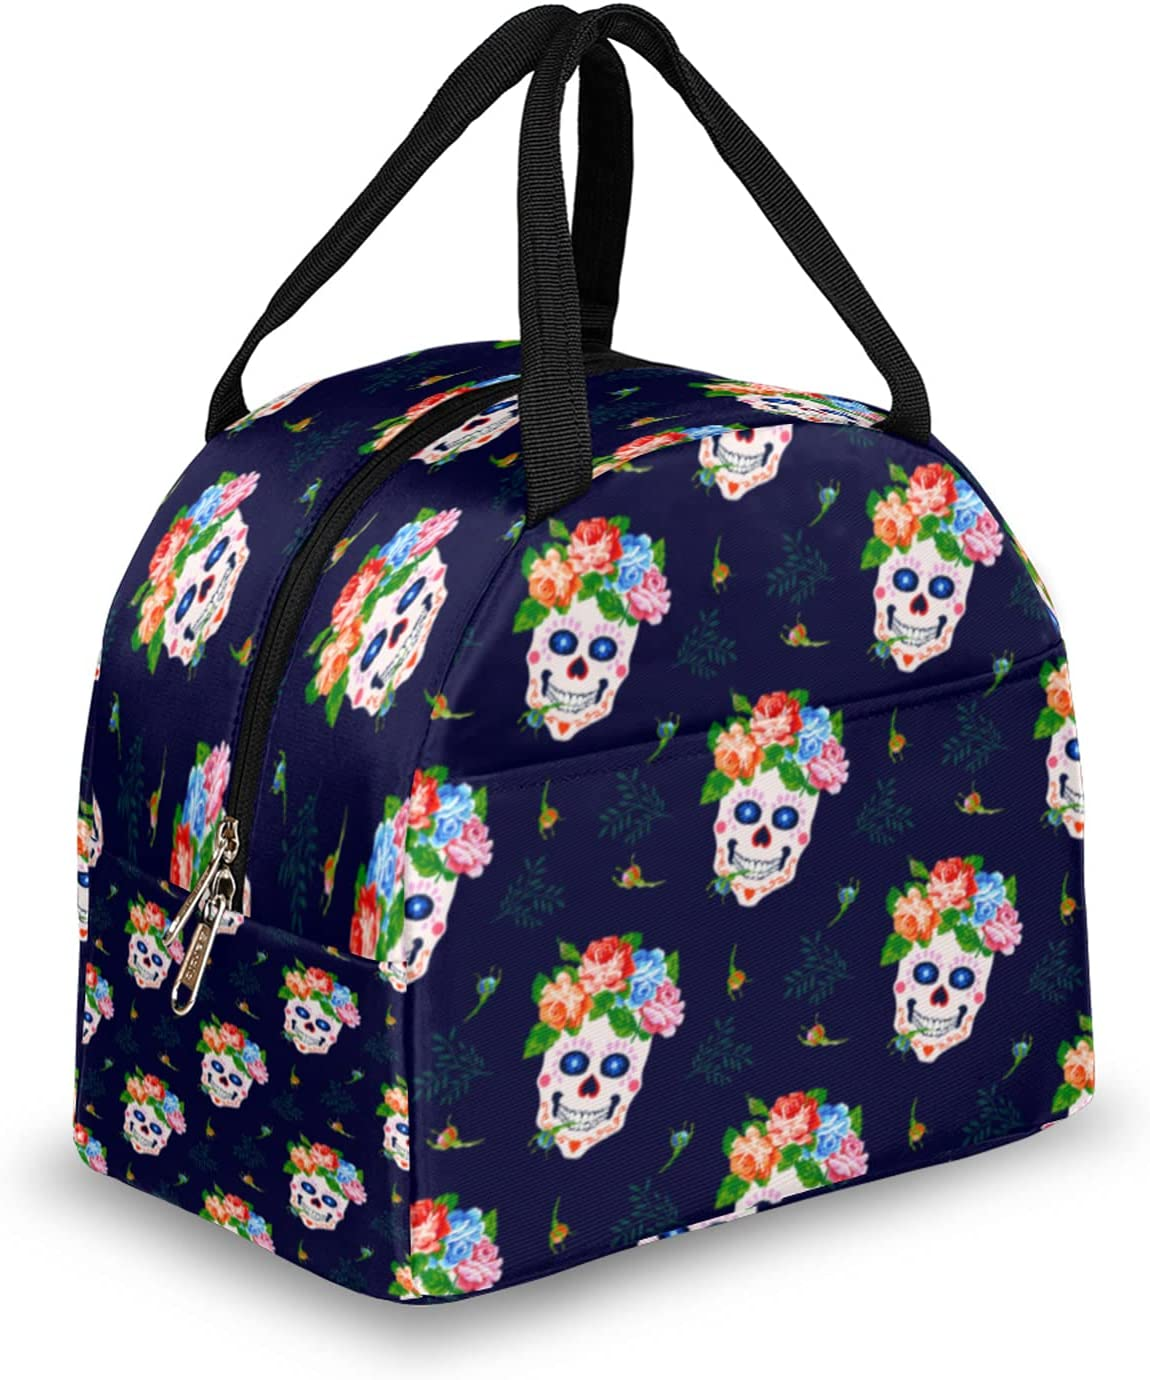 Skull Lunch Bag Free Shipping New Wreath 25% OFF Flower Box Re Women for Insulated